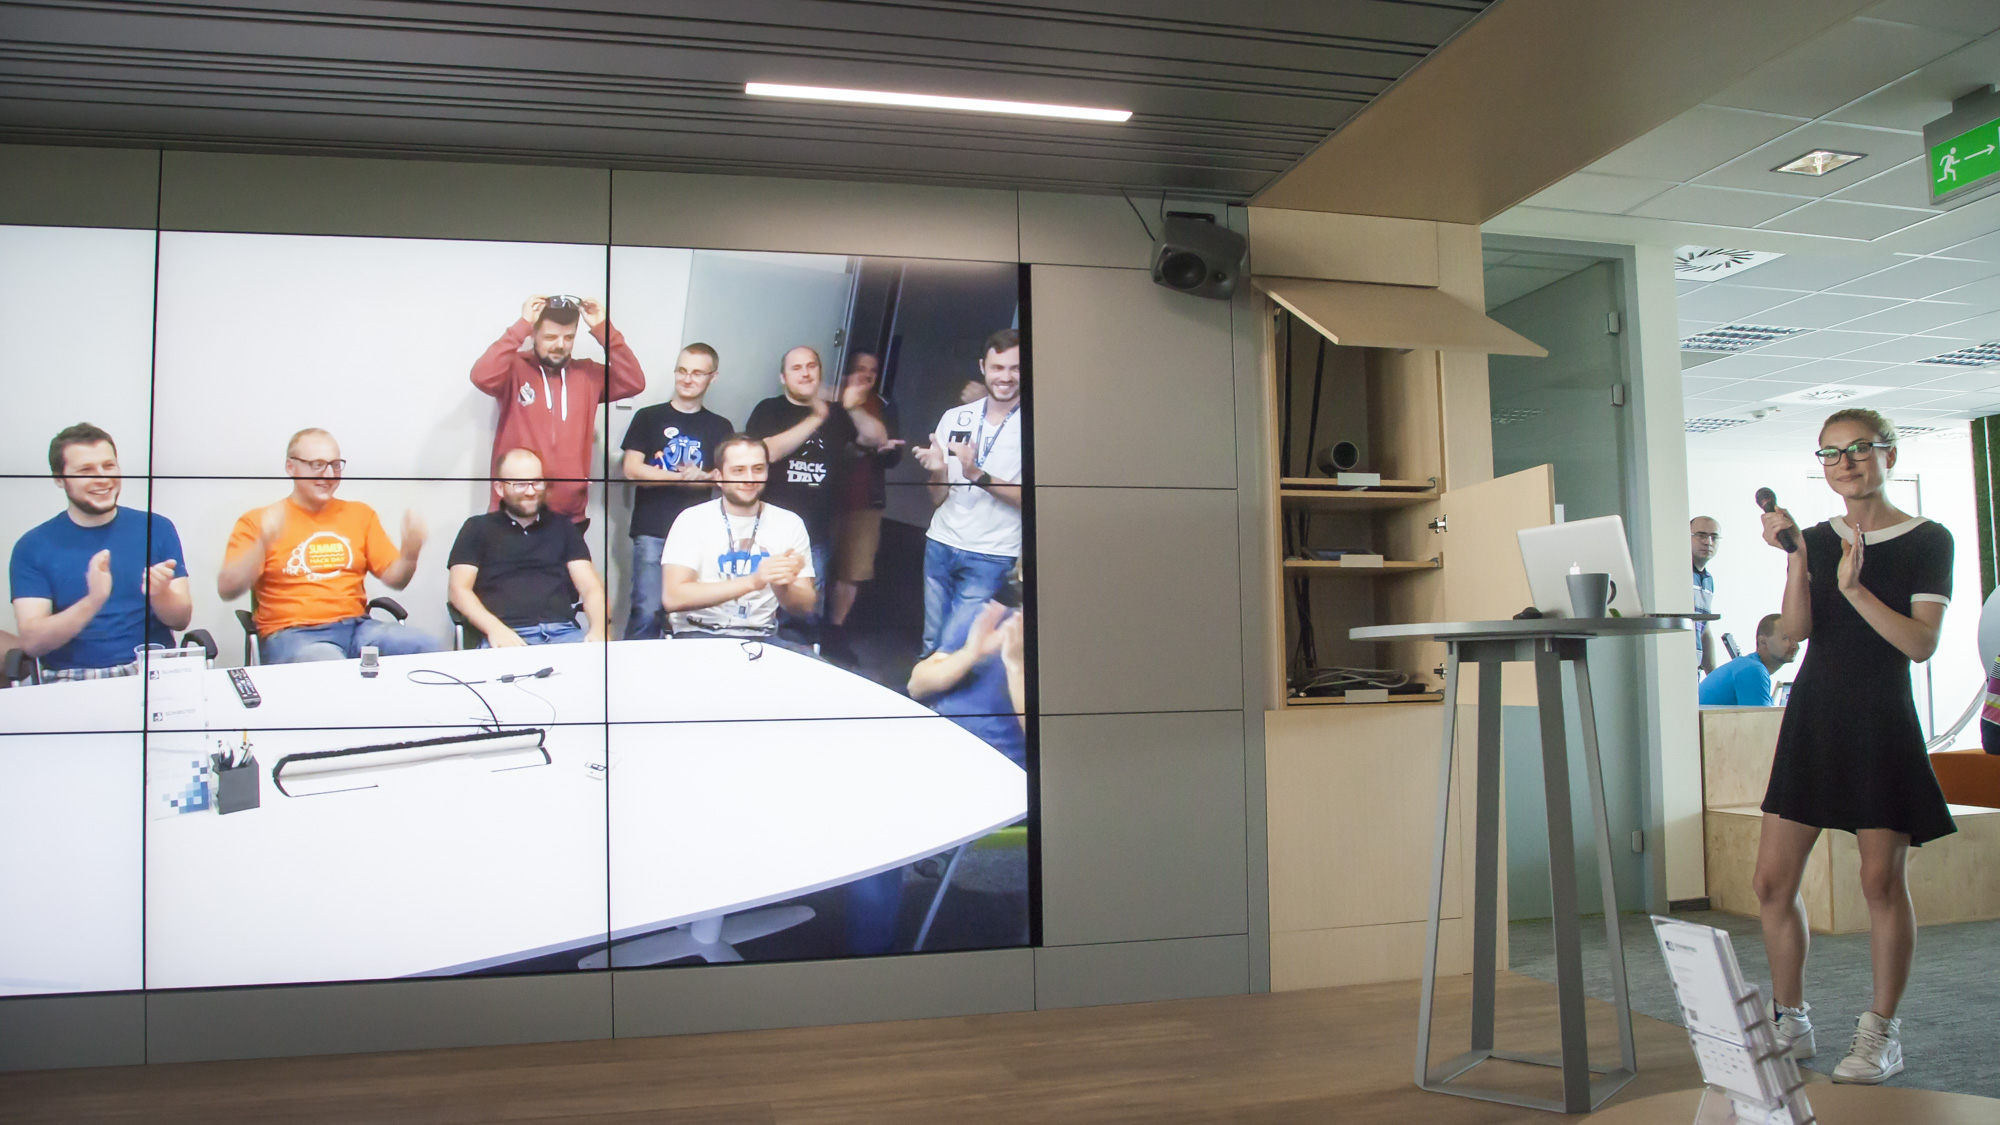 The team in the Gdansk office cheers as one of their projects is declared the winner